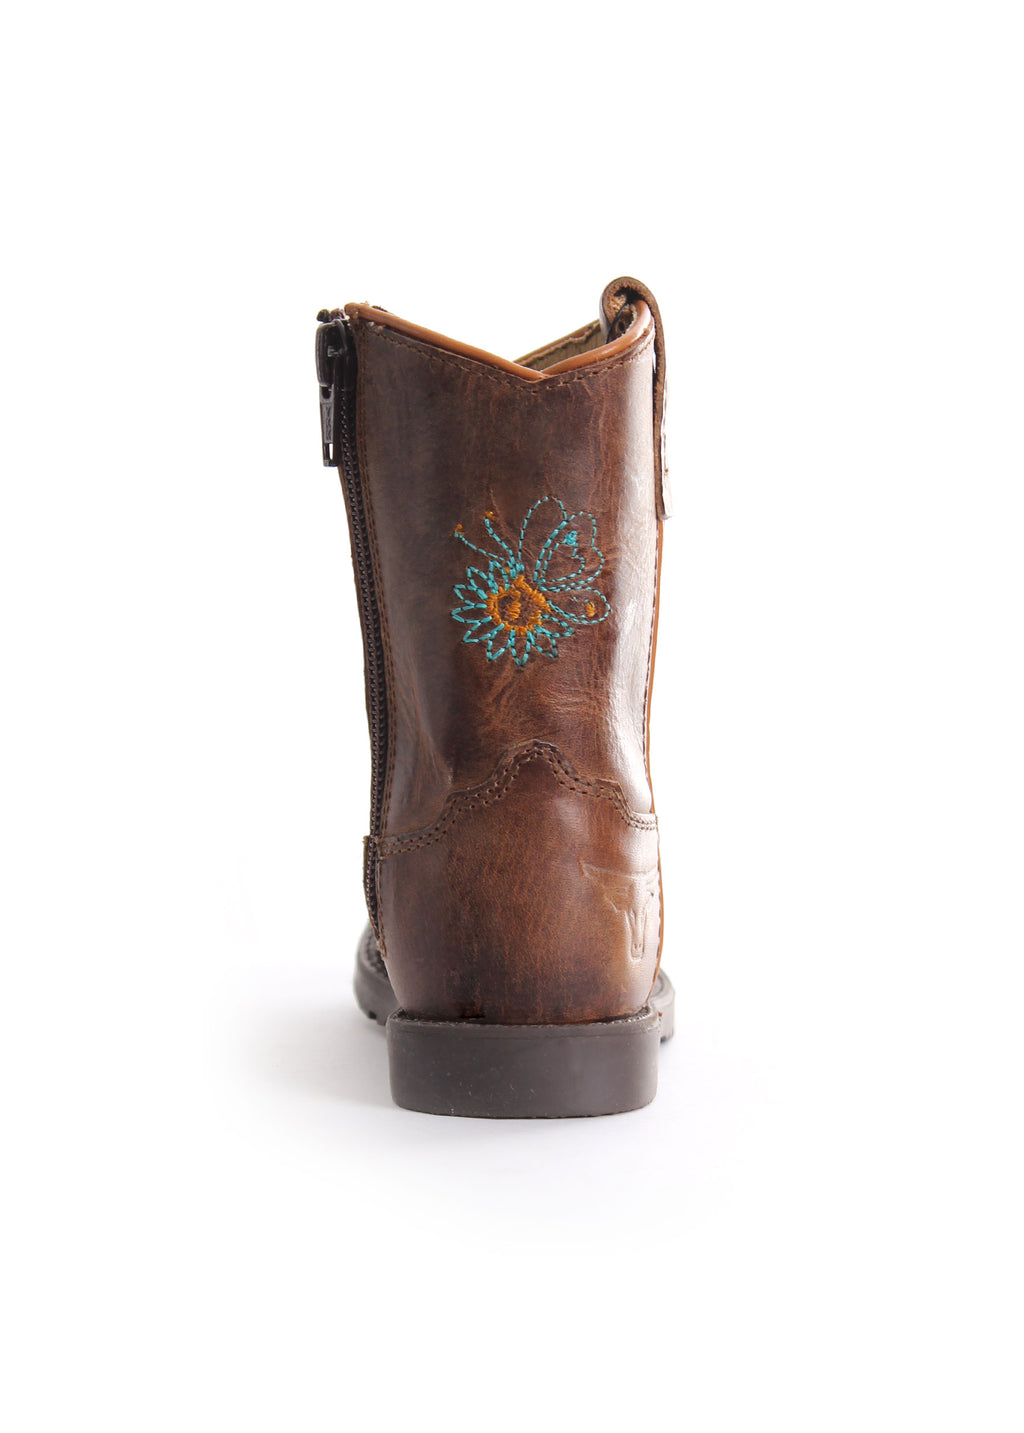 Pure Western | Kids | Boots | Toe Square Medium | Maybelle | Toddler - BK8 Outfitters Australia